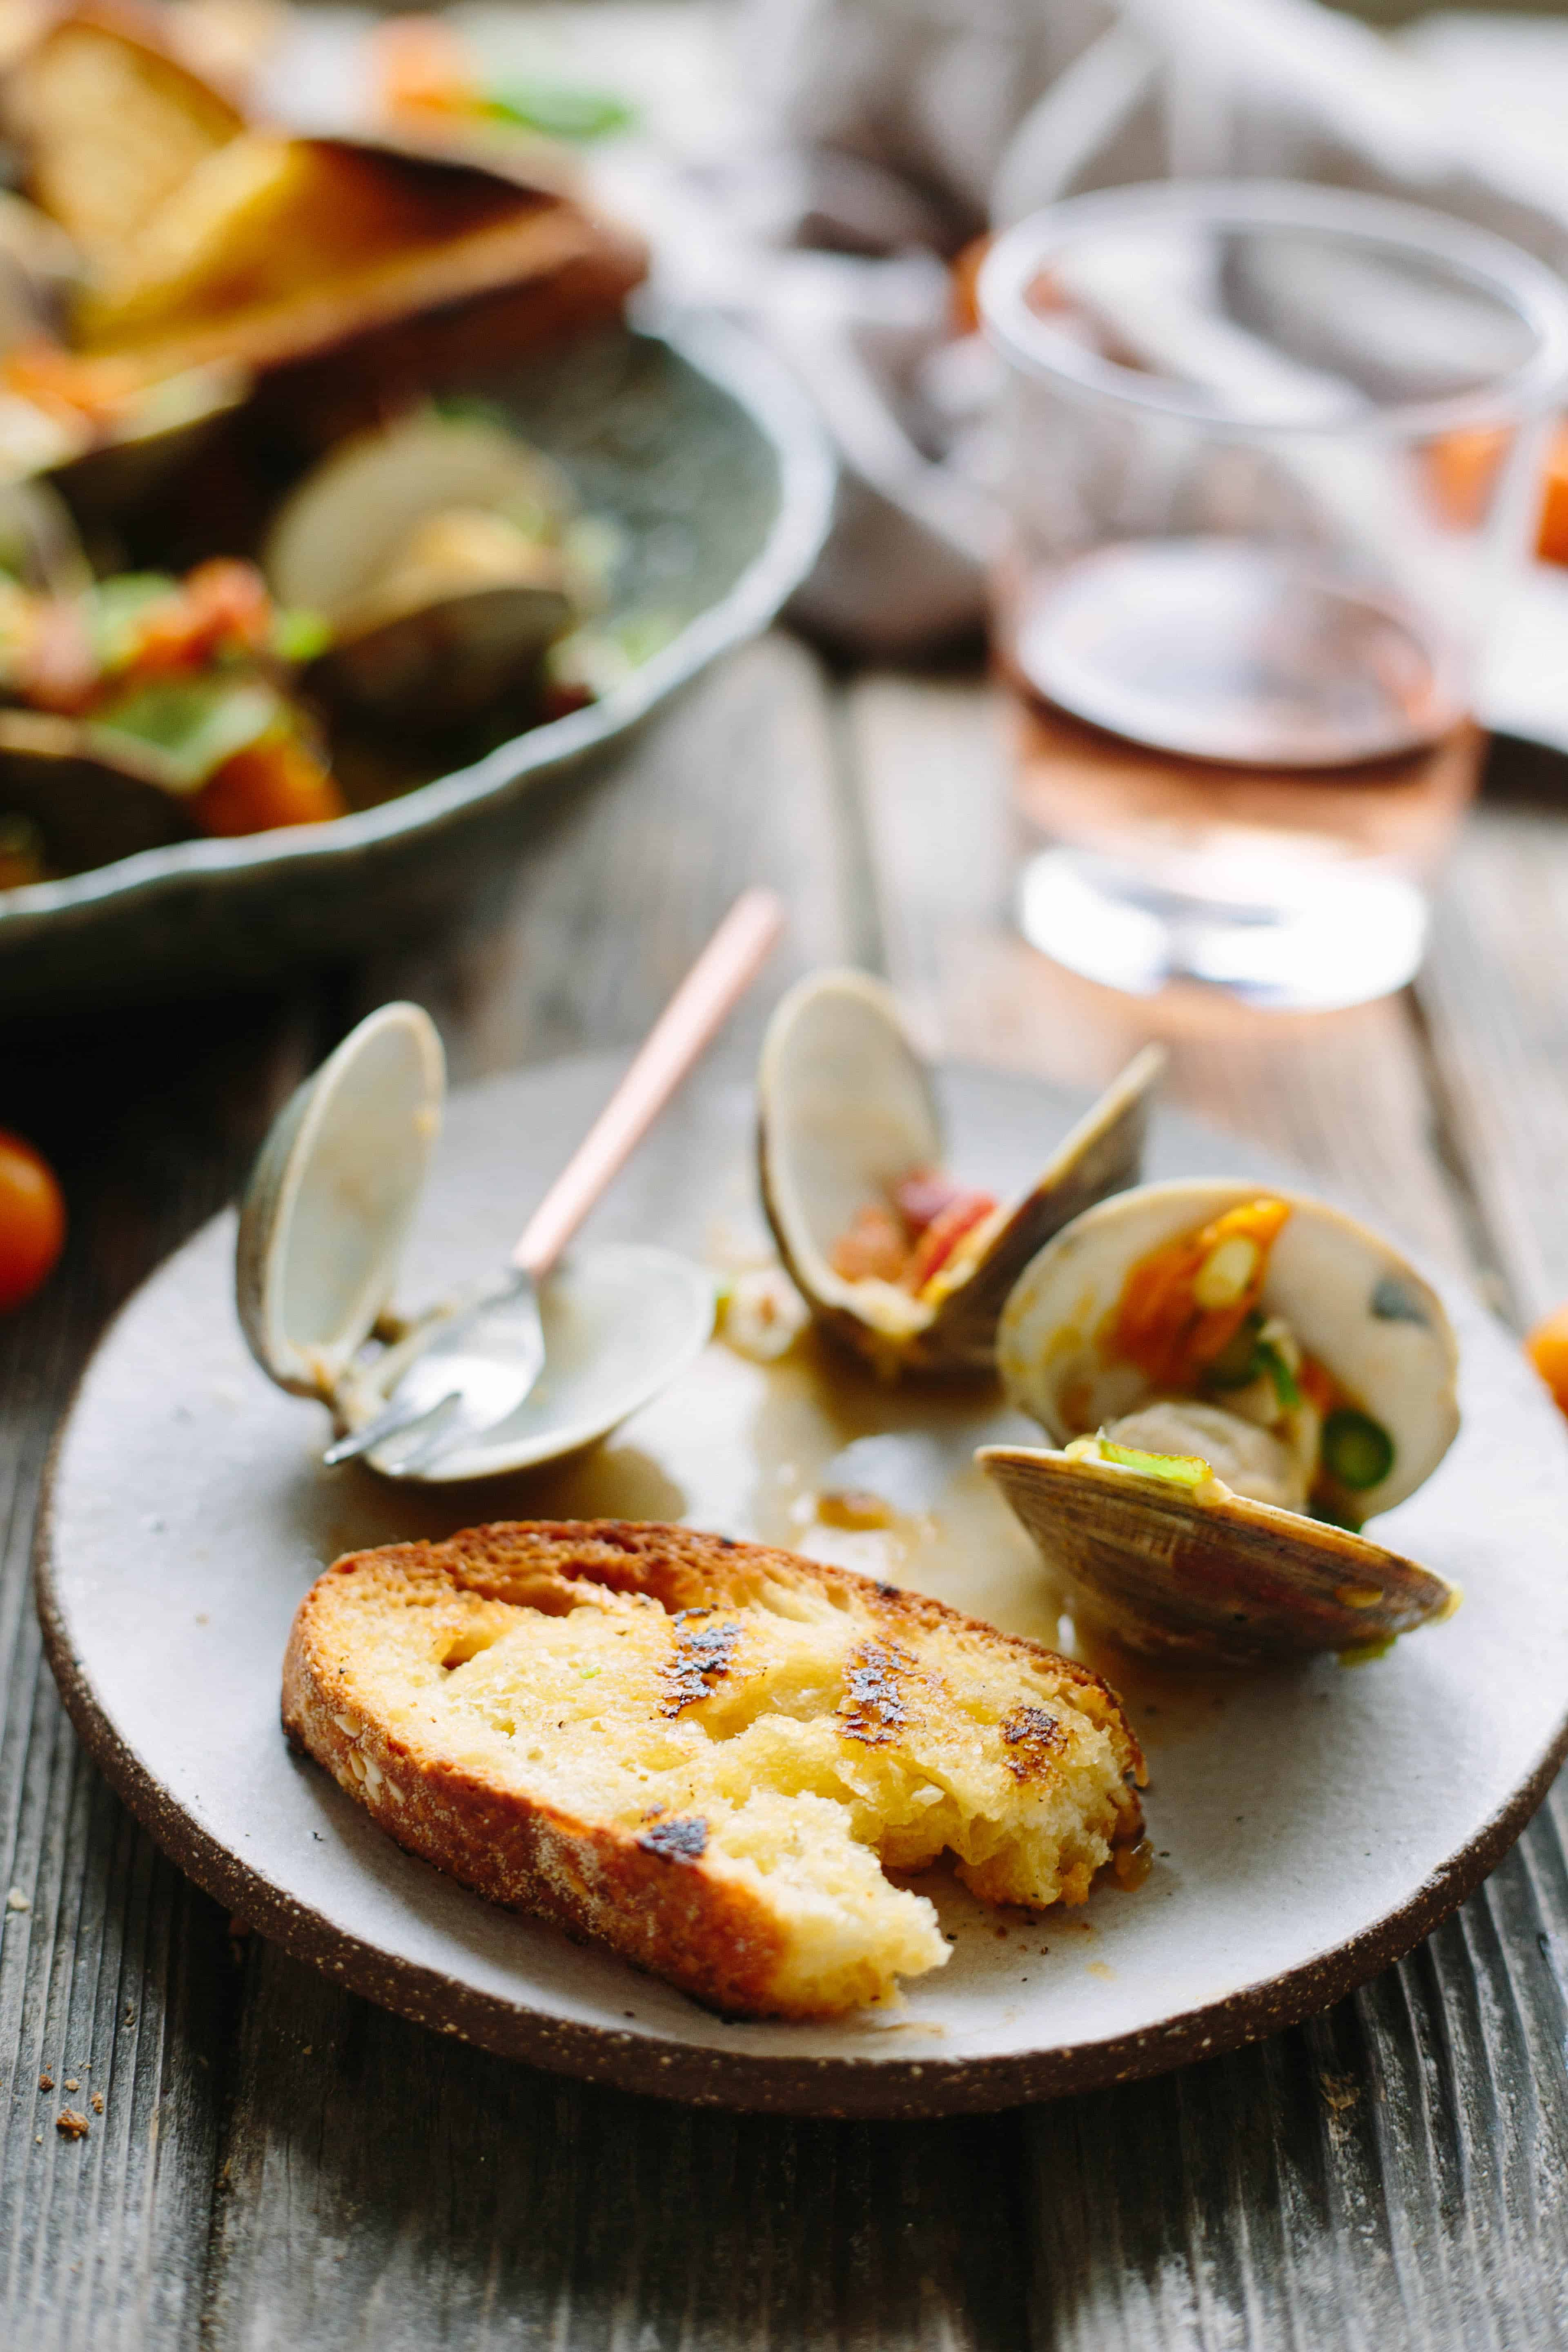 Toasted, buttered baguette and tomato topped clams on a white dinner plate.